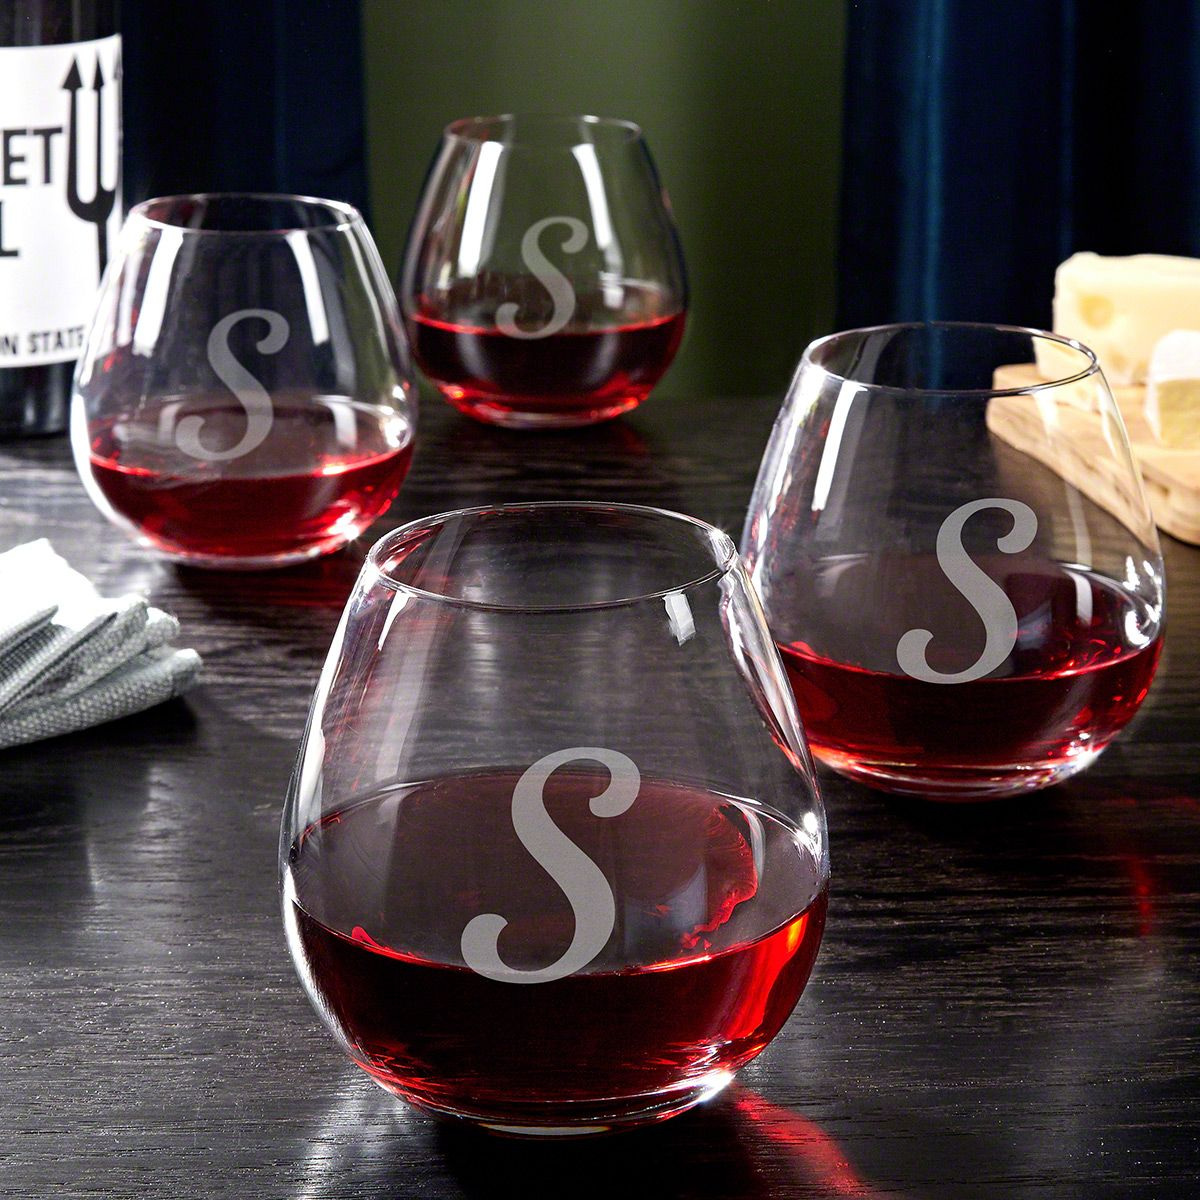 Viviani Personalized Stemless Wine Glasses, Set of 4